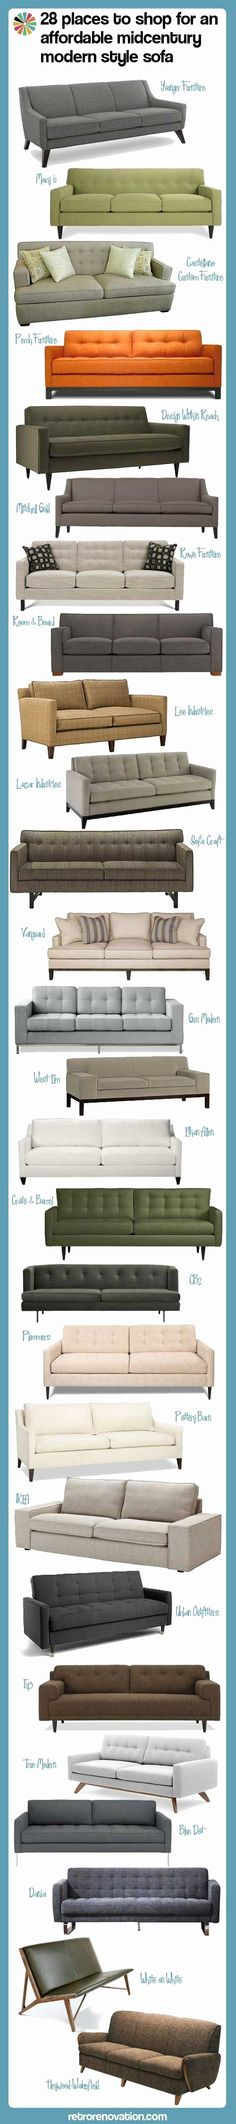 places to shop for an affordable midcentury modern style sofa 28 affordable mid century modern sofas — Retro affordable mid century modern sofas — Retro Renovation Midcentury Modern, Danish Modern, Modern Interior, Lohals, Retro Sofa, Best Decor, Mid Century Modern Sofa, Retro Renovation, Living Room Inspiration